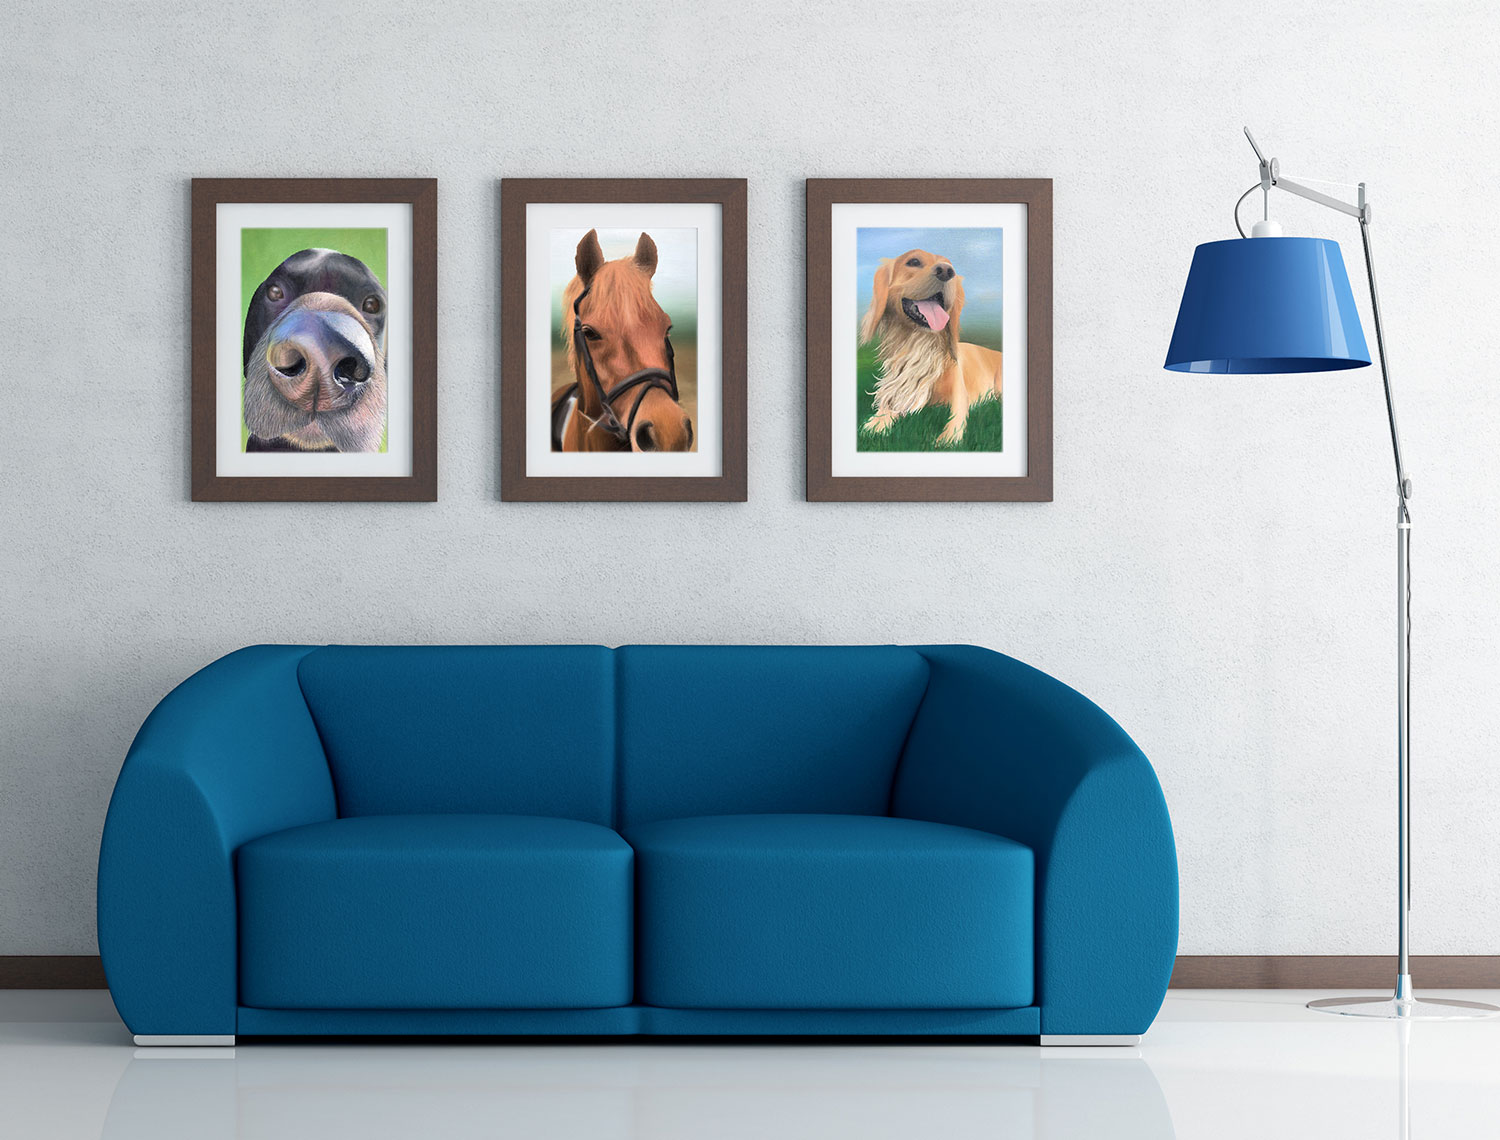 3 paintings on a wall